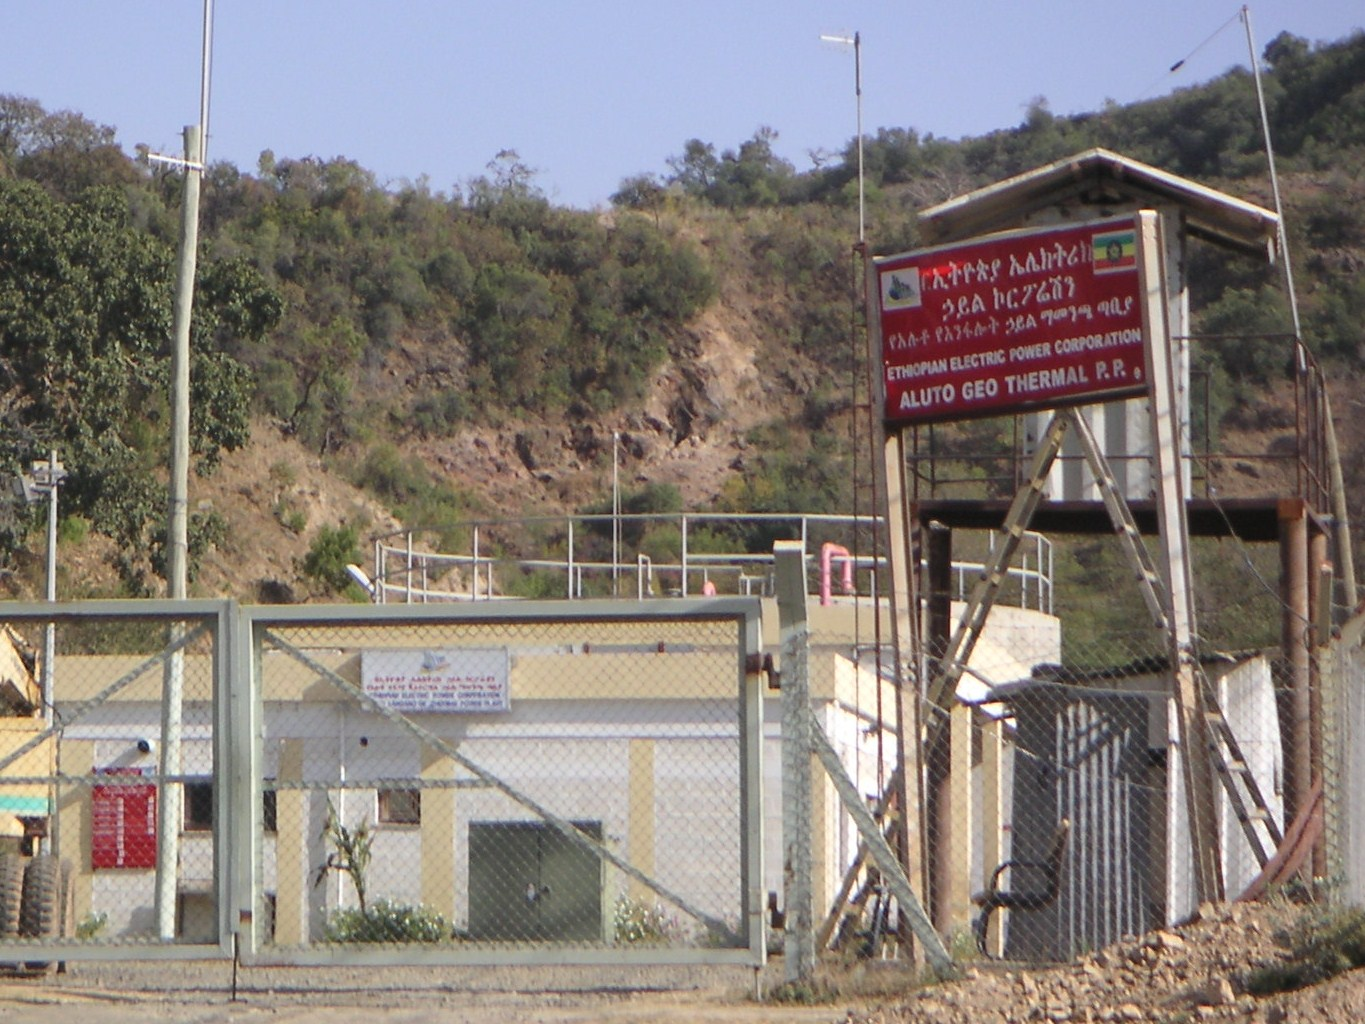 Entrance to the Ethiopian Electric Power Corporation Aluto Langano Geothermal plant.